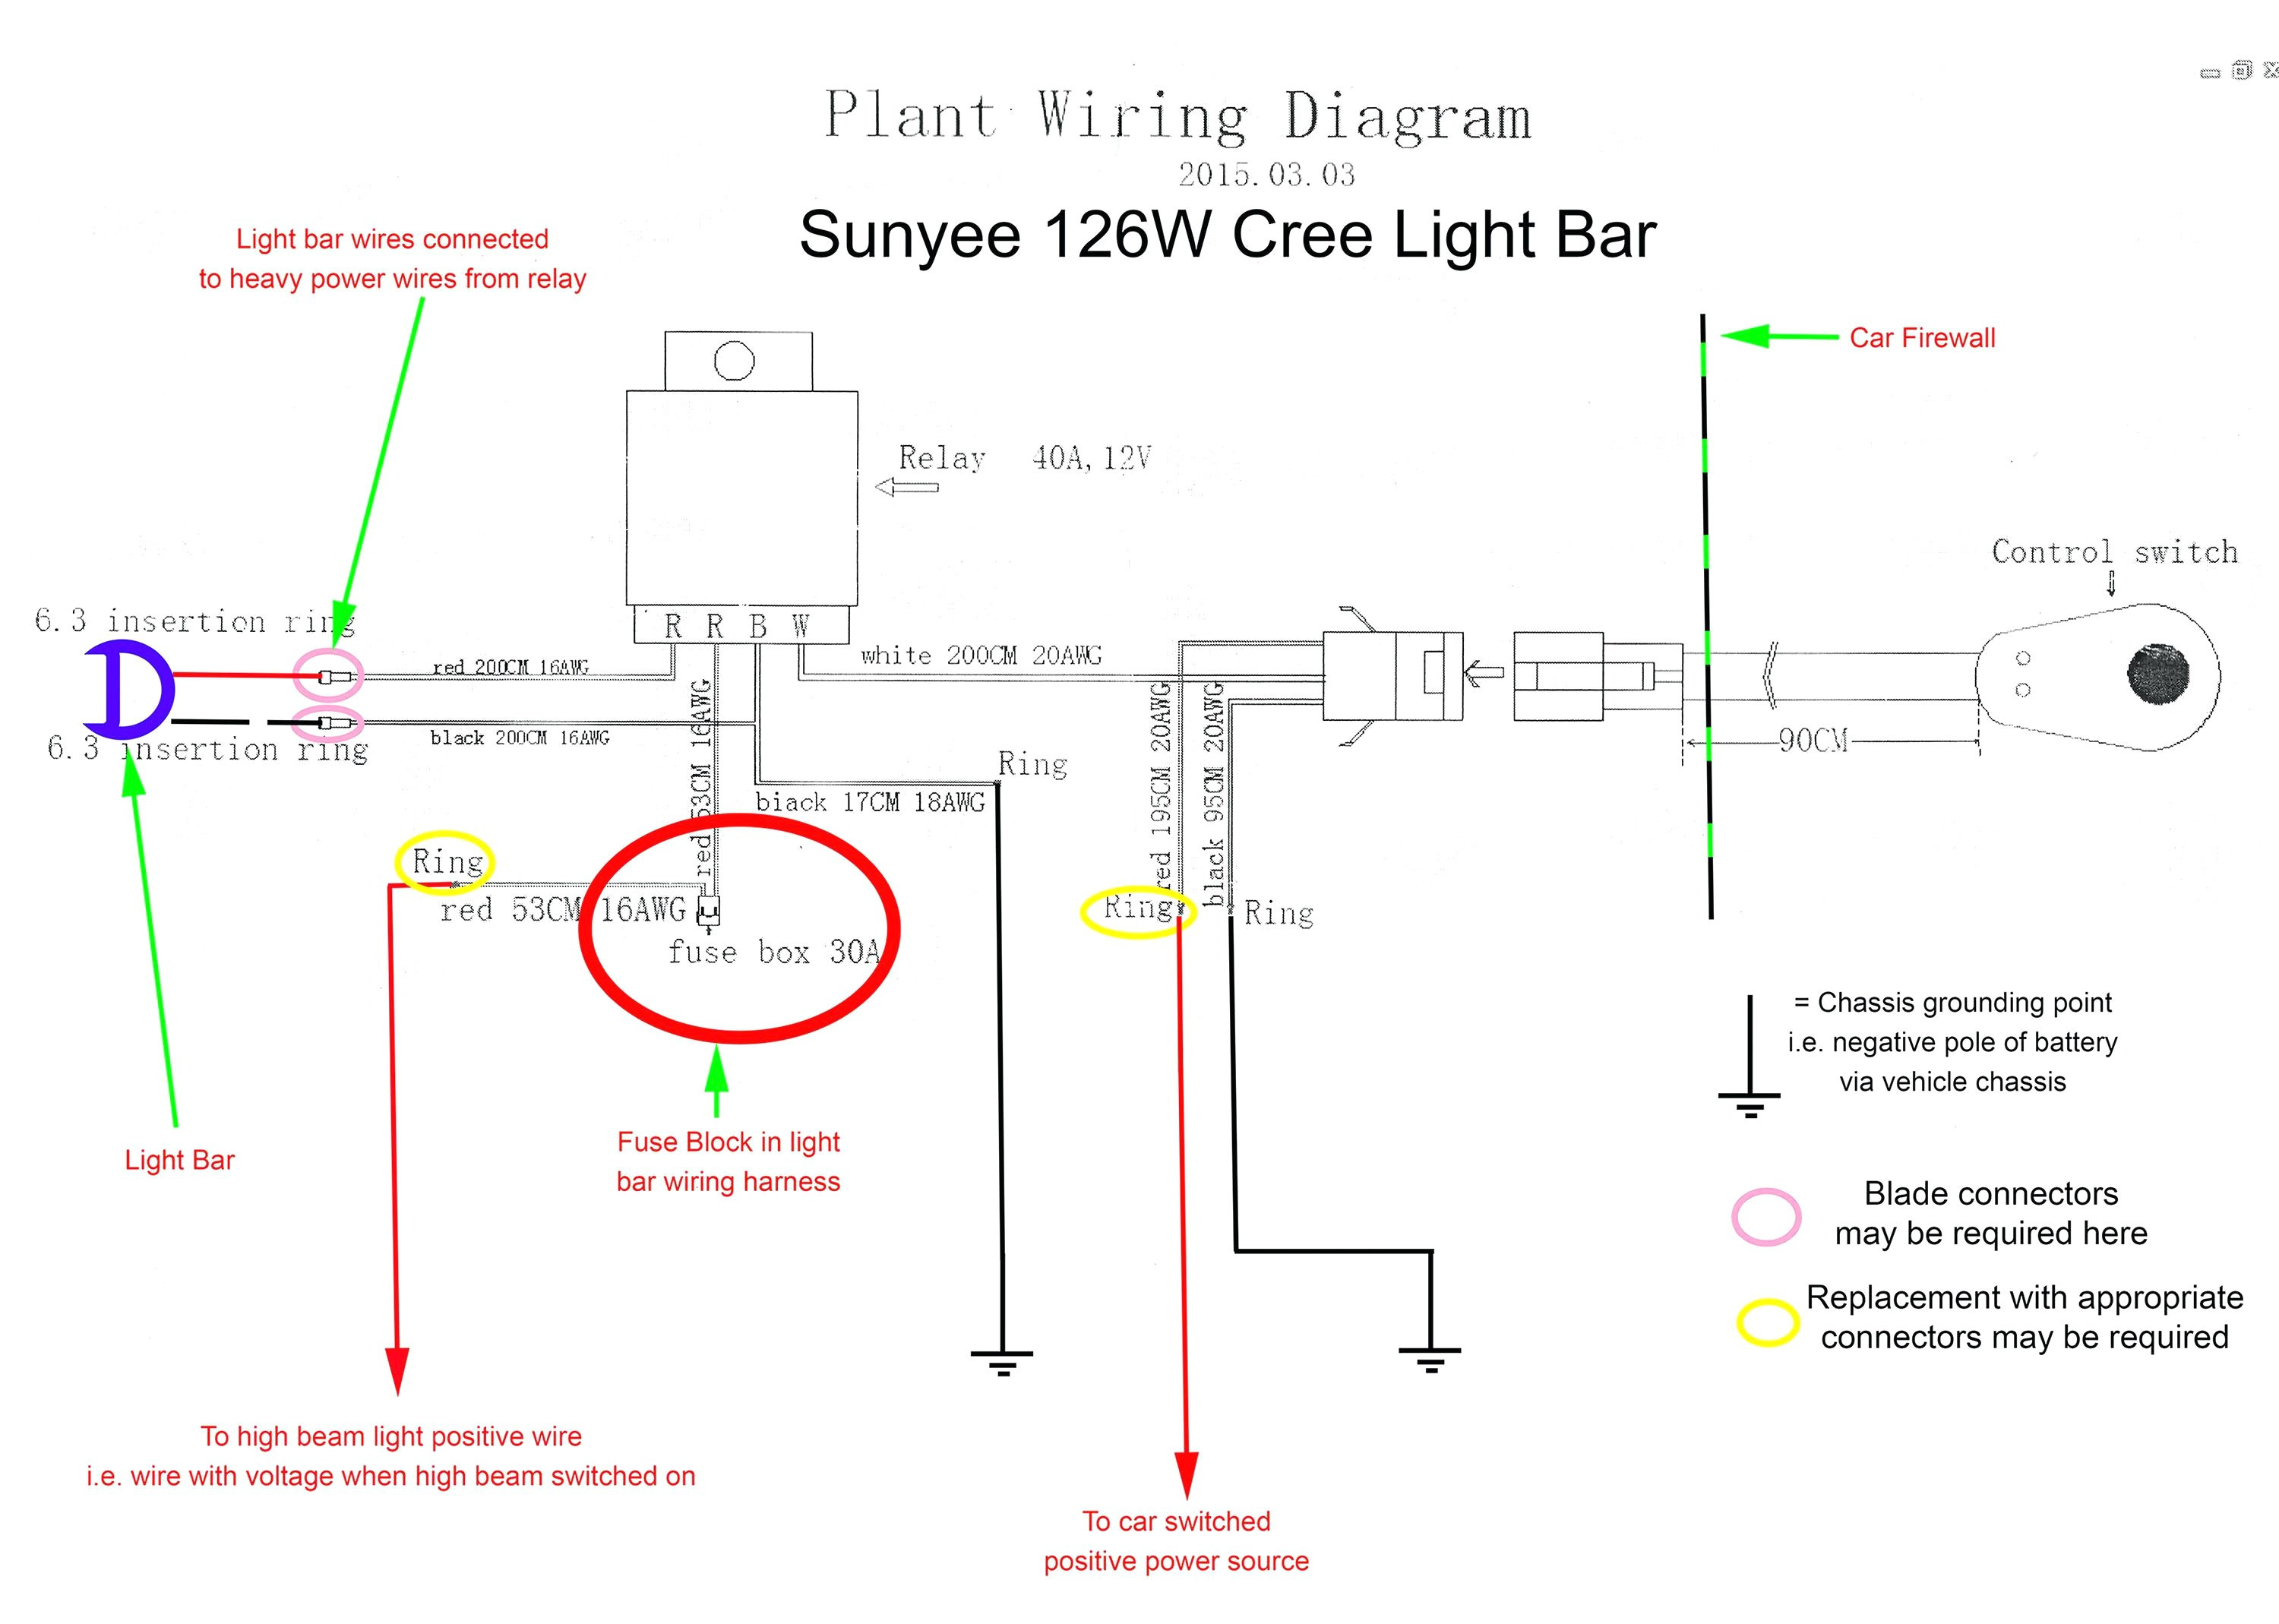 get 3 wire rtd wiring diagram download Three Wire Pressure Transducer Wiring 3 wire rtd wiring diagram 3 wire rtd wiring diagram reference 3 wire pt100 connection